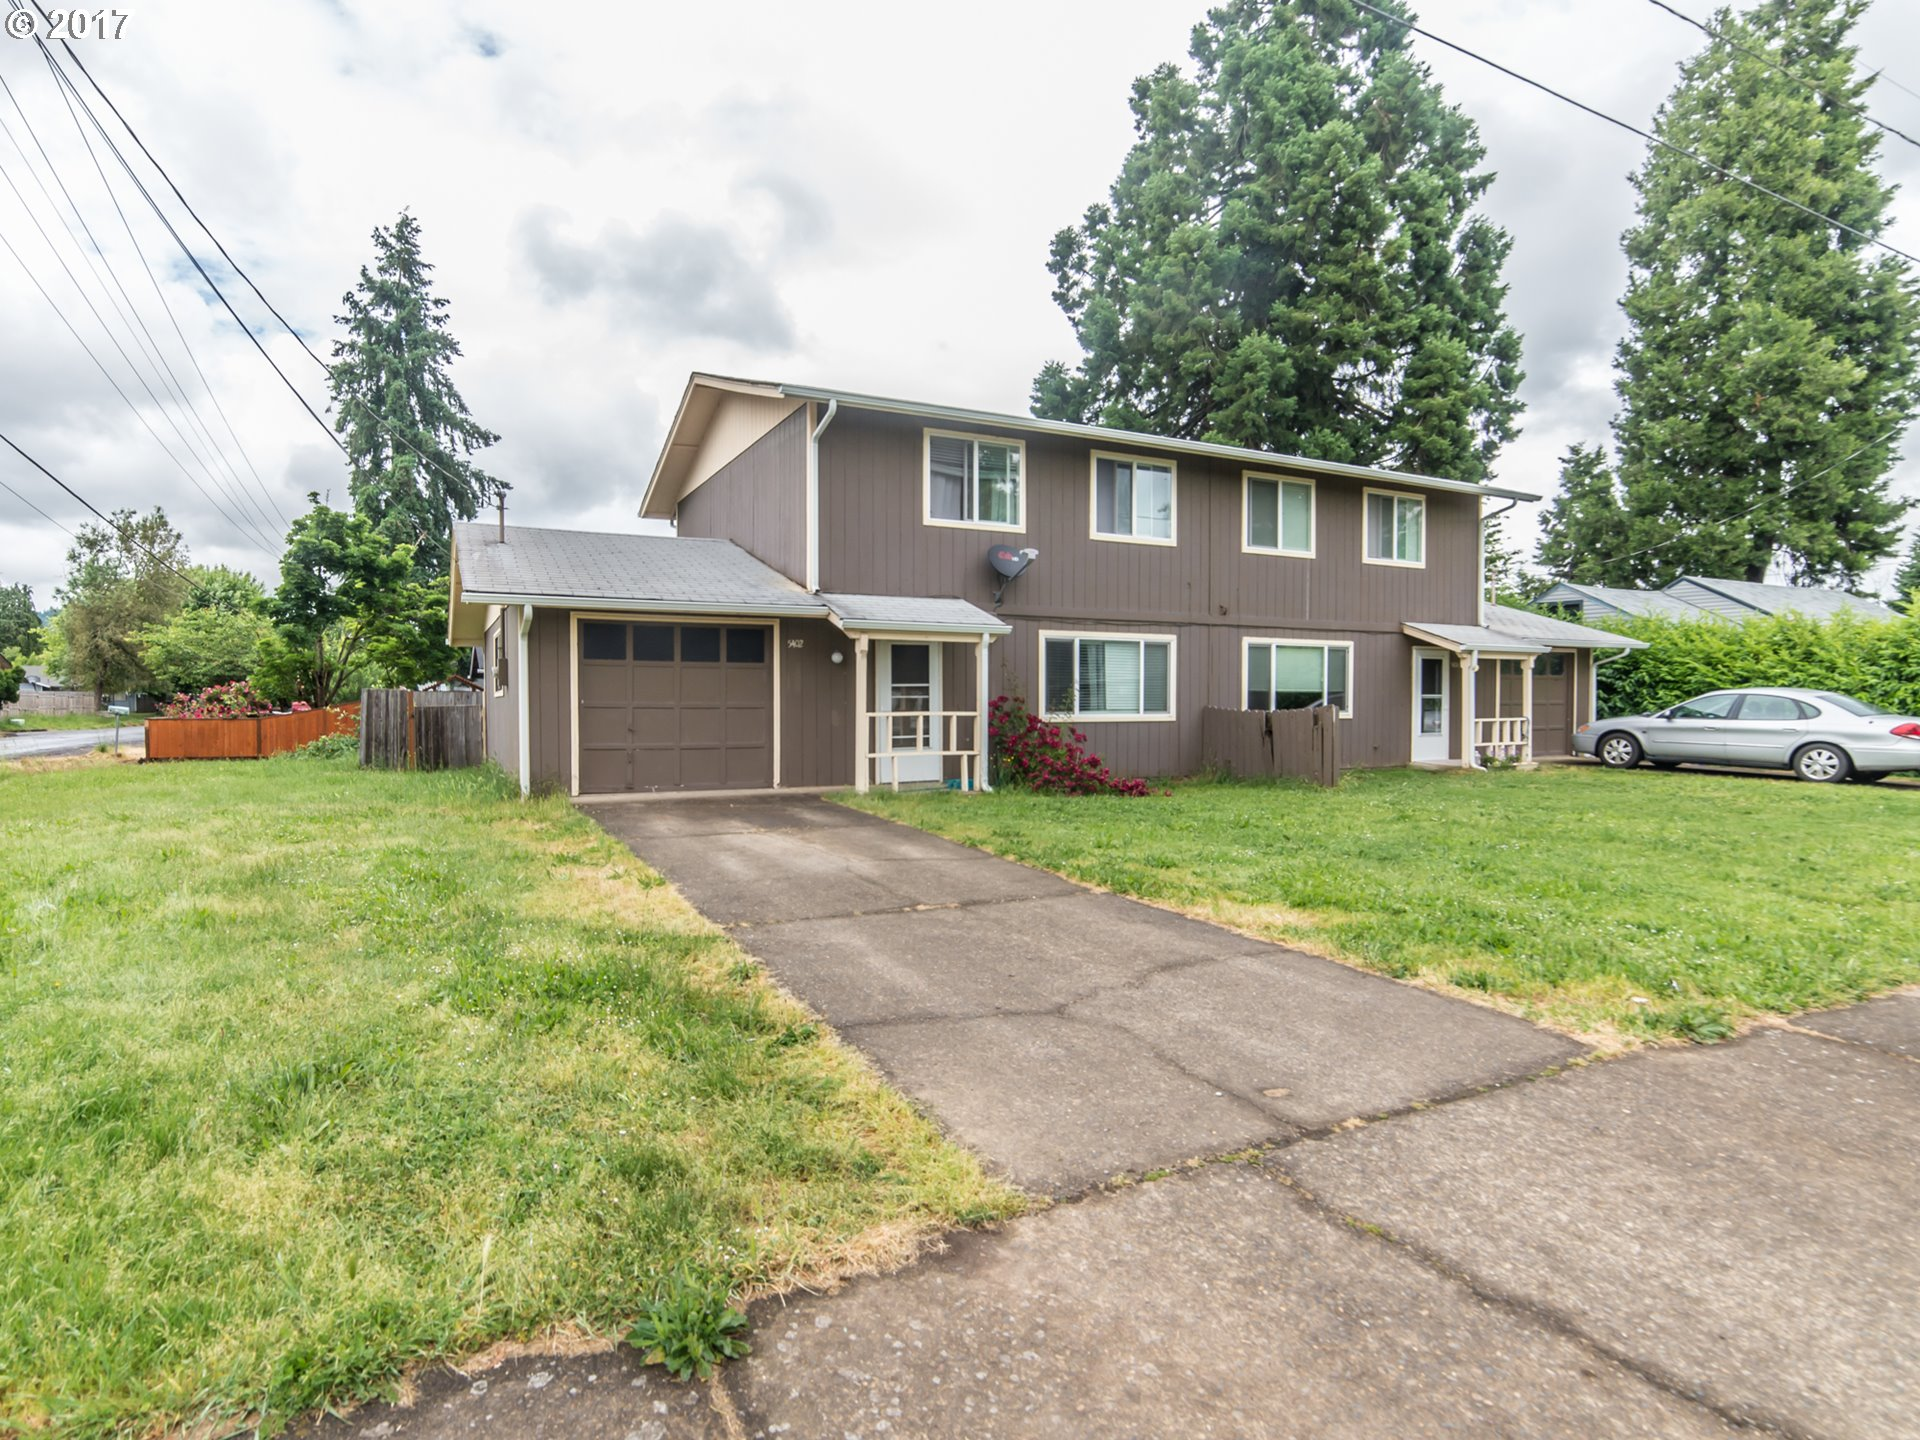 5402 A ST, Springfield, OR 97478